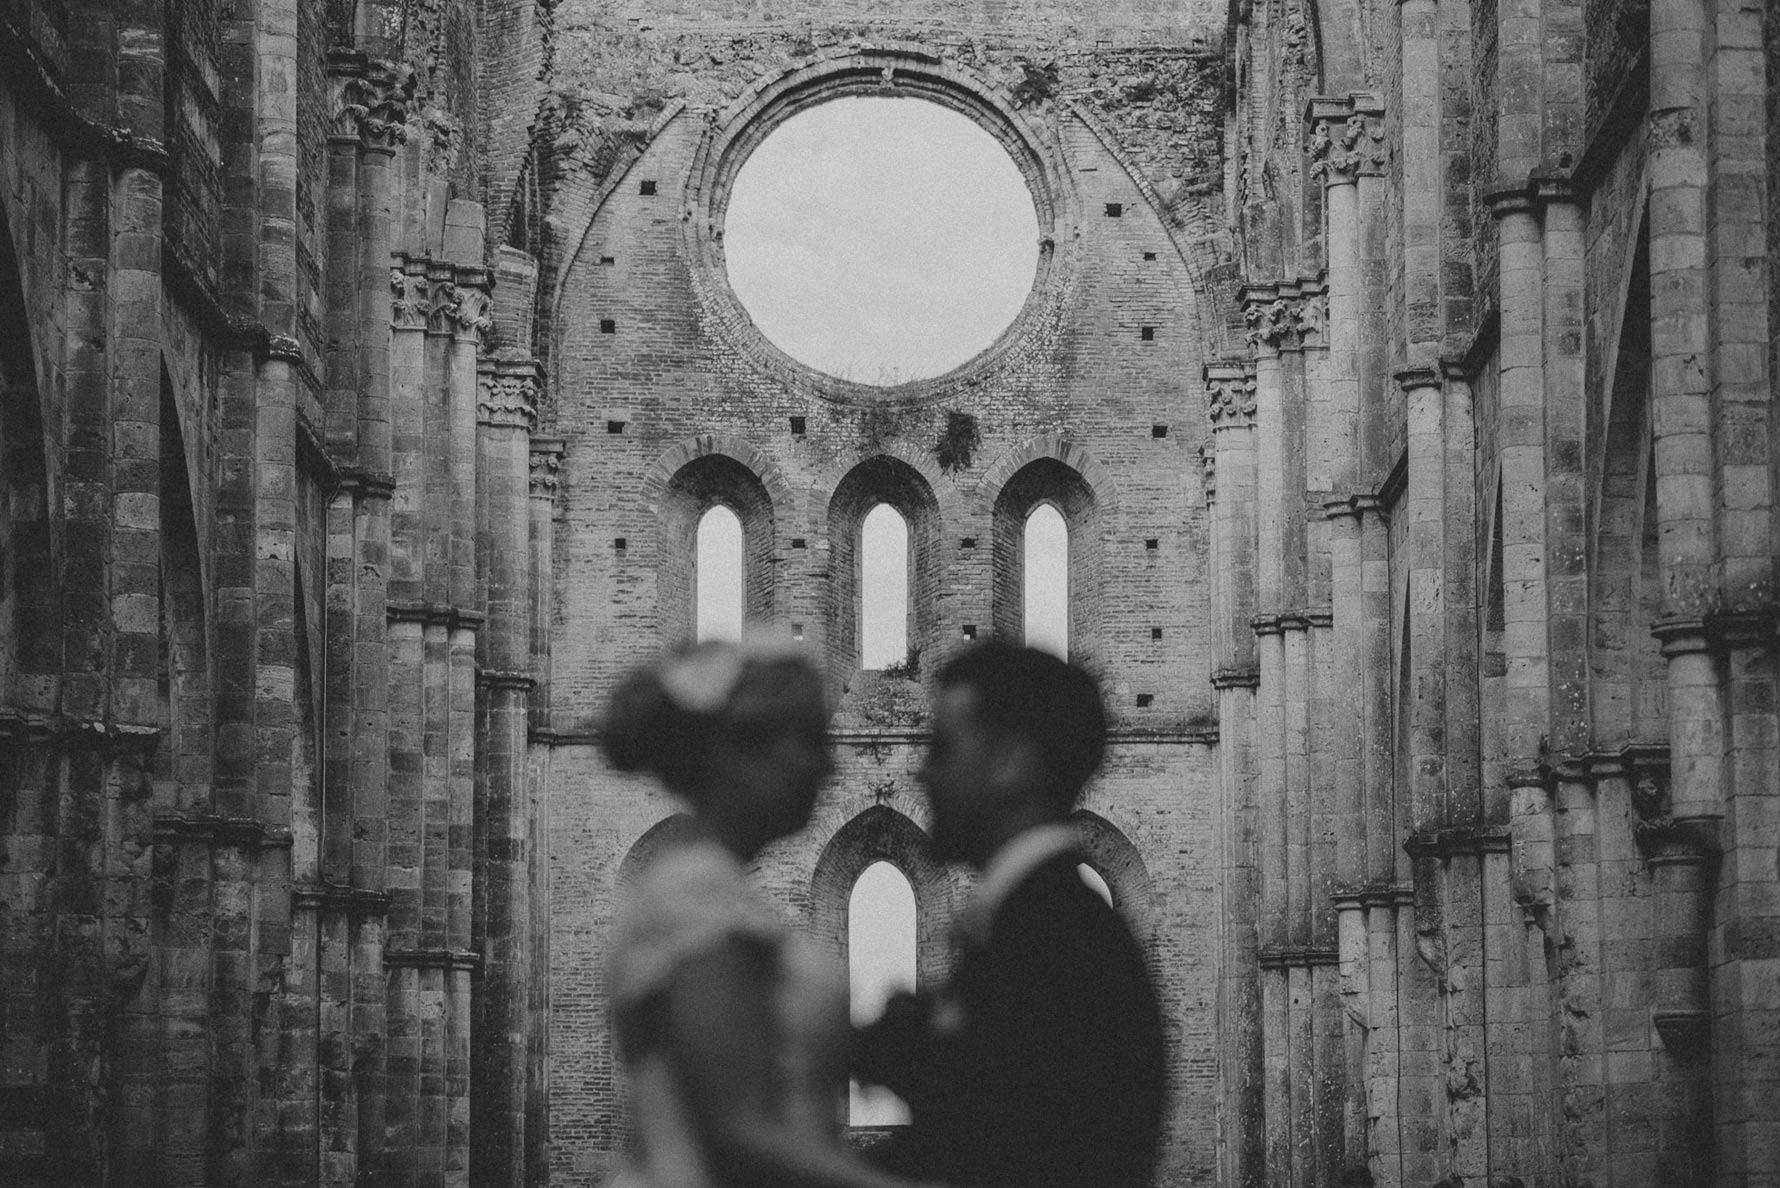 saint-galgano-abbey-wedding-photographer-livio-lacurre-photography